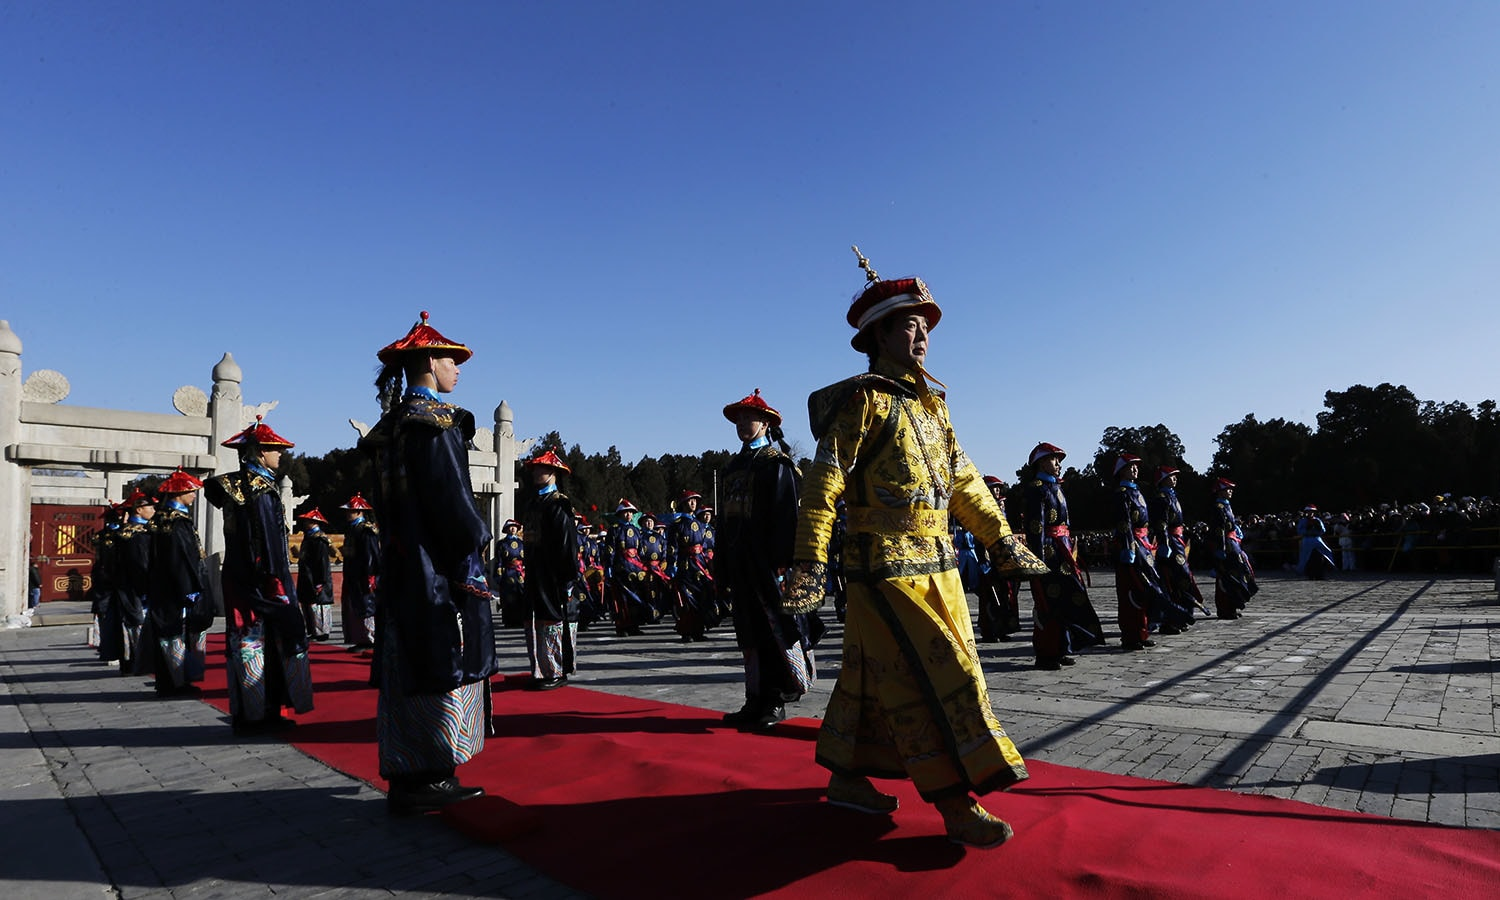 Qi Xue'en, right, a performer dressed as a Qing Dynasty emperor, participates in the ancient Qing Dynasty ceremony in which emperors prayed for good harvest and fortune at a temple fair. ─ AP